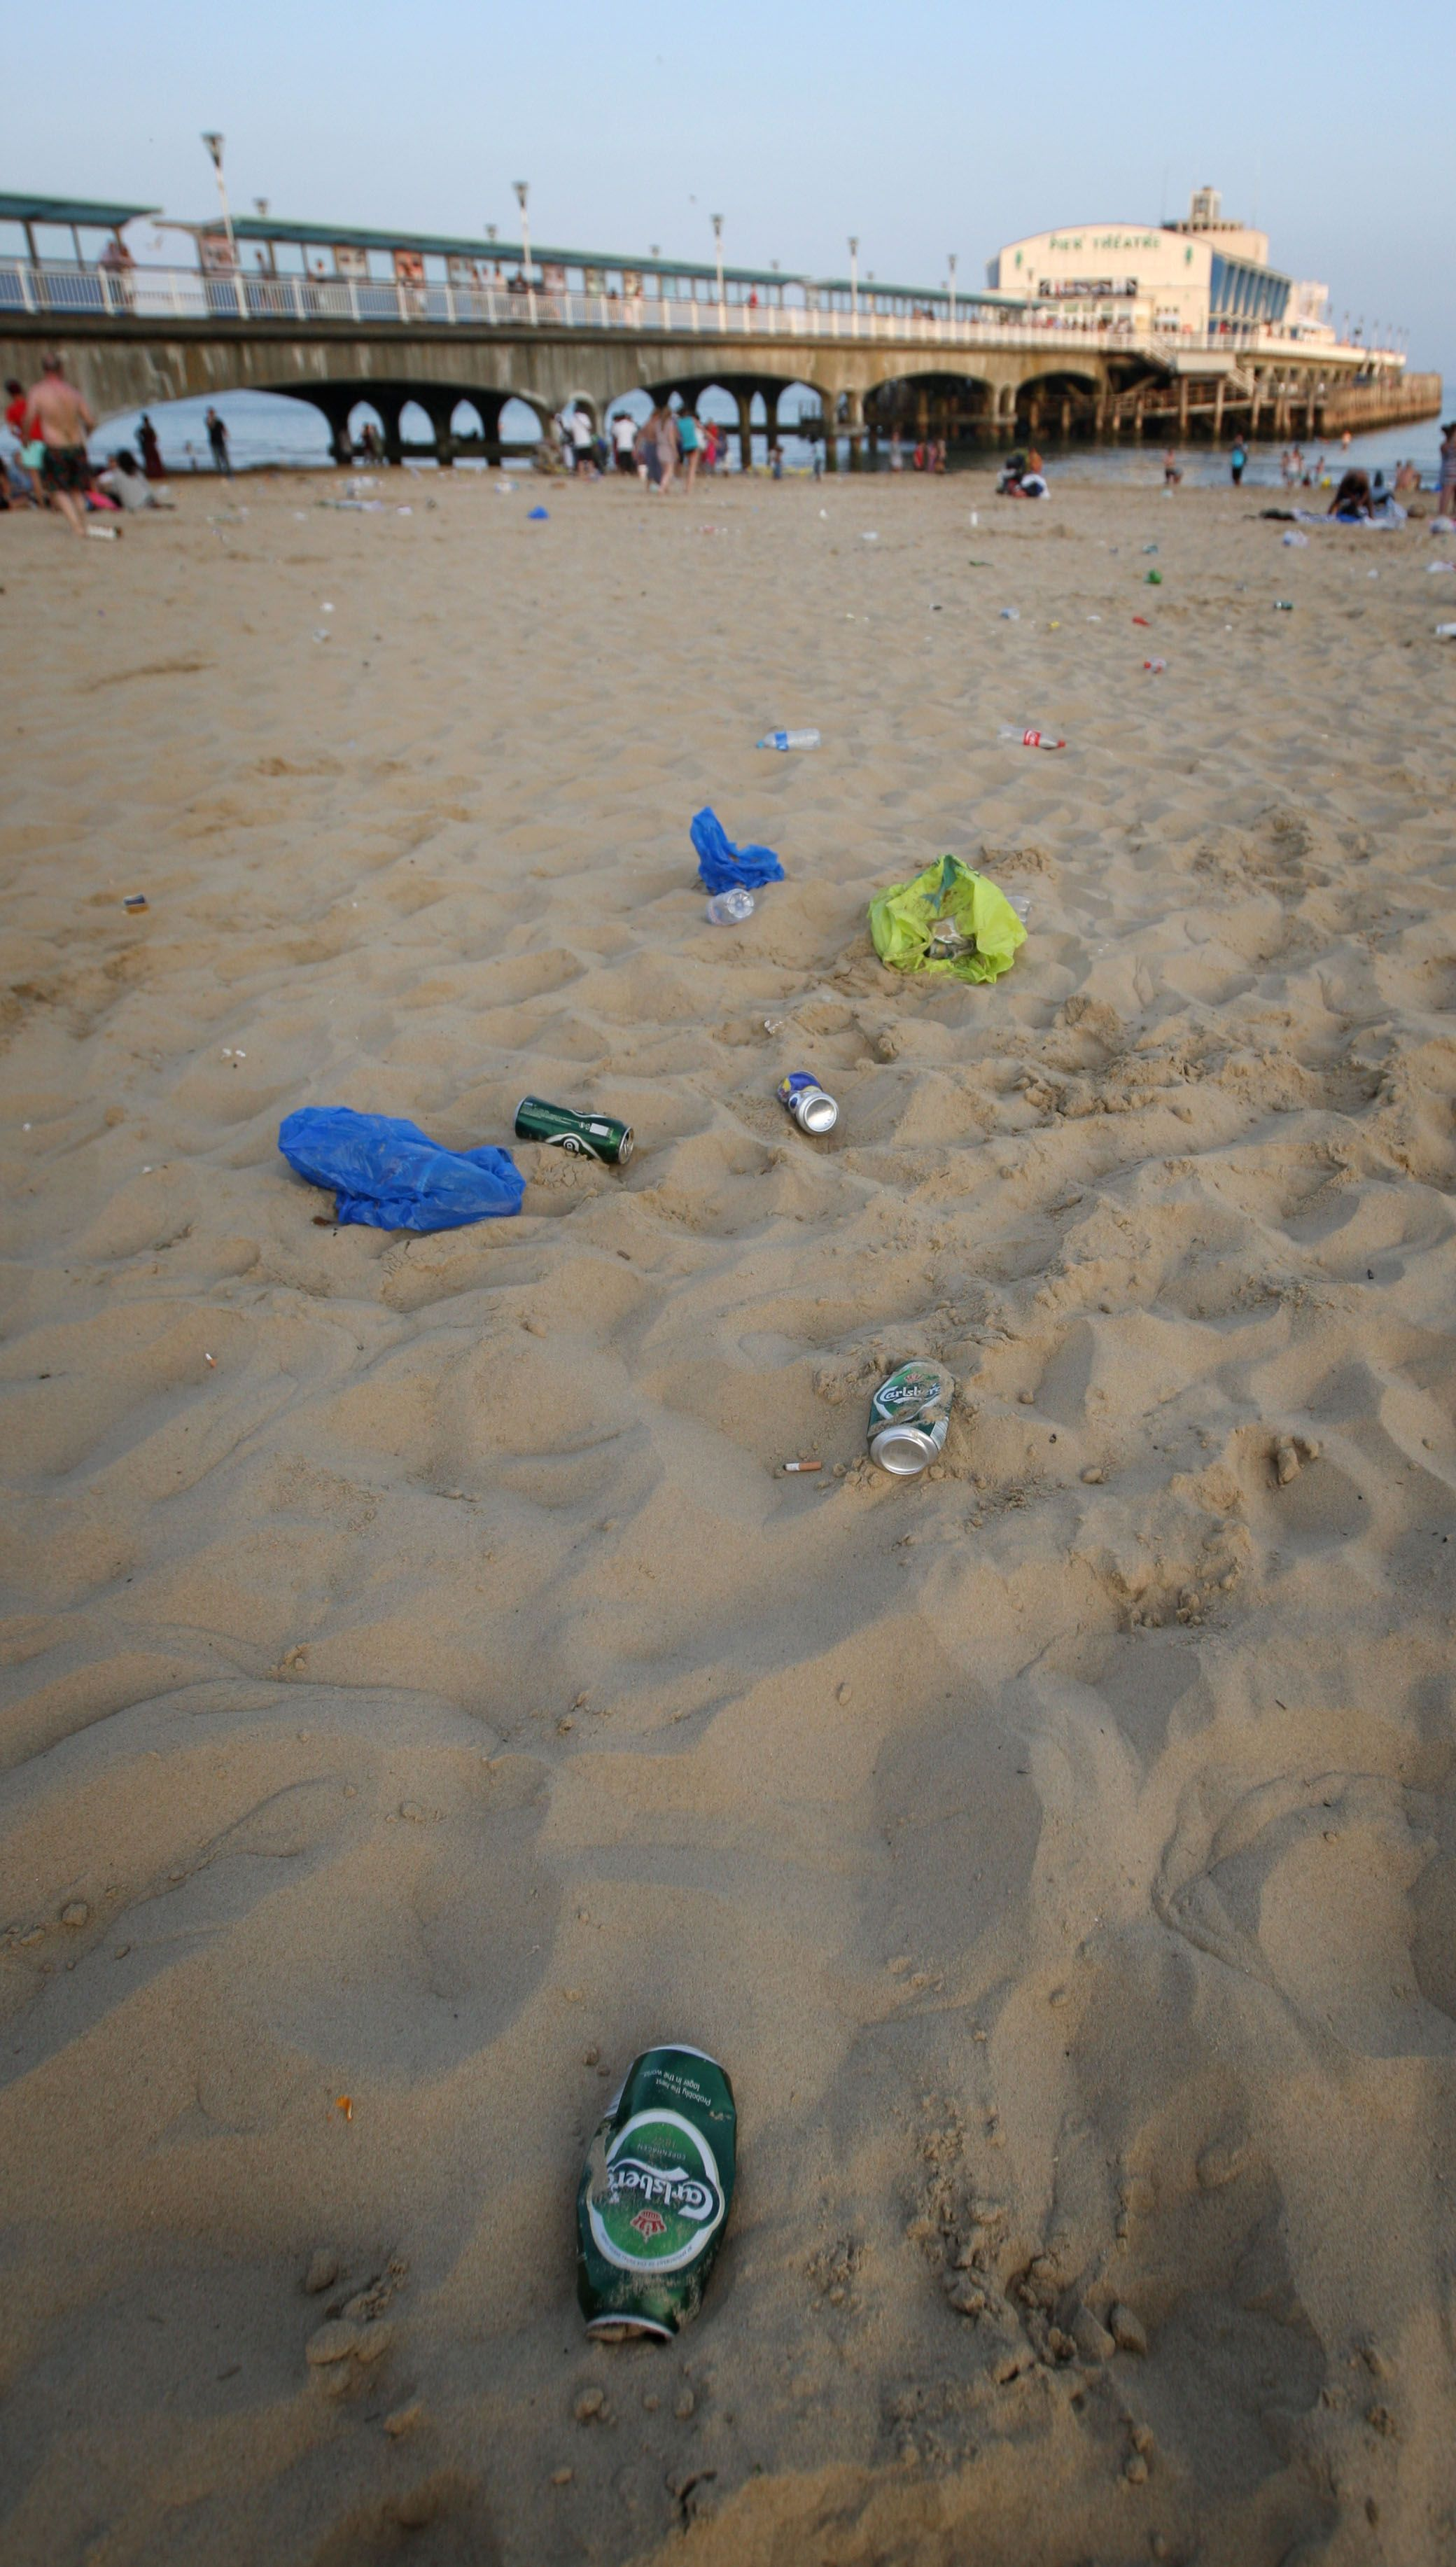 Litter left on Bournemouth beach during last summer's heatwave